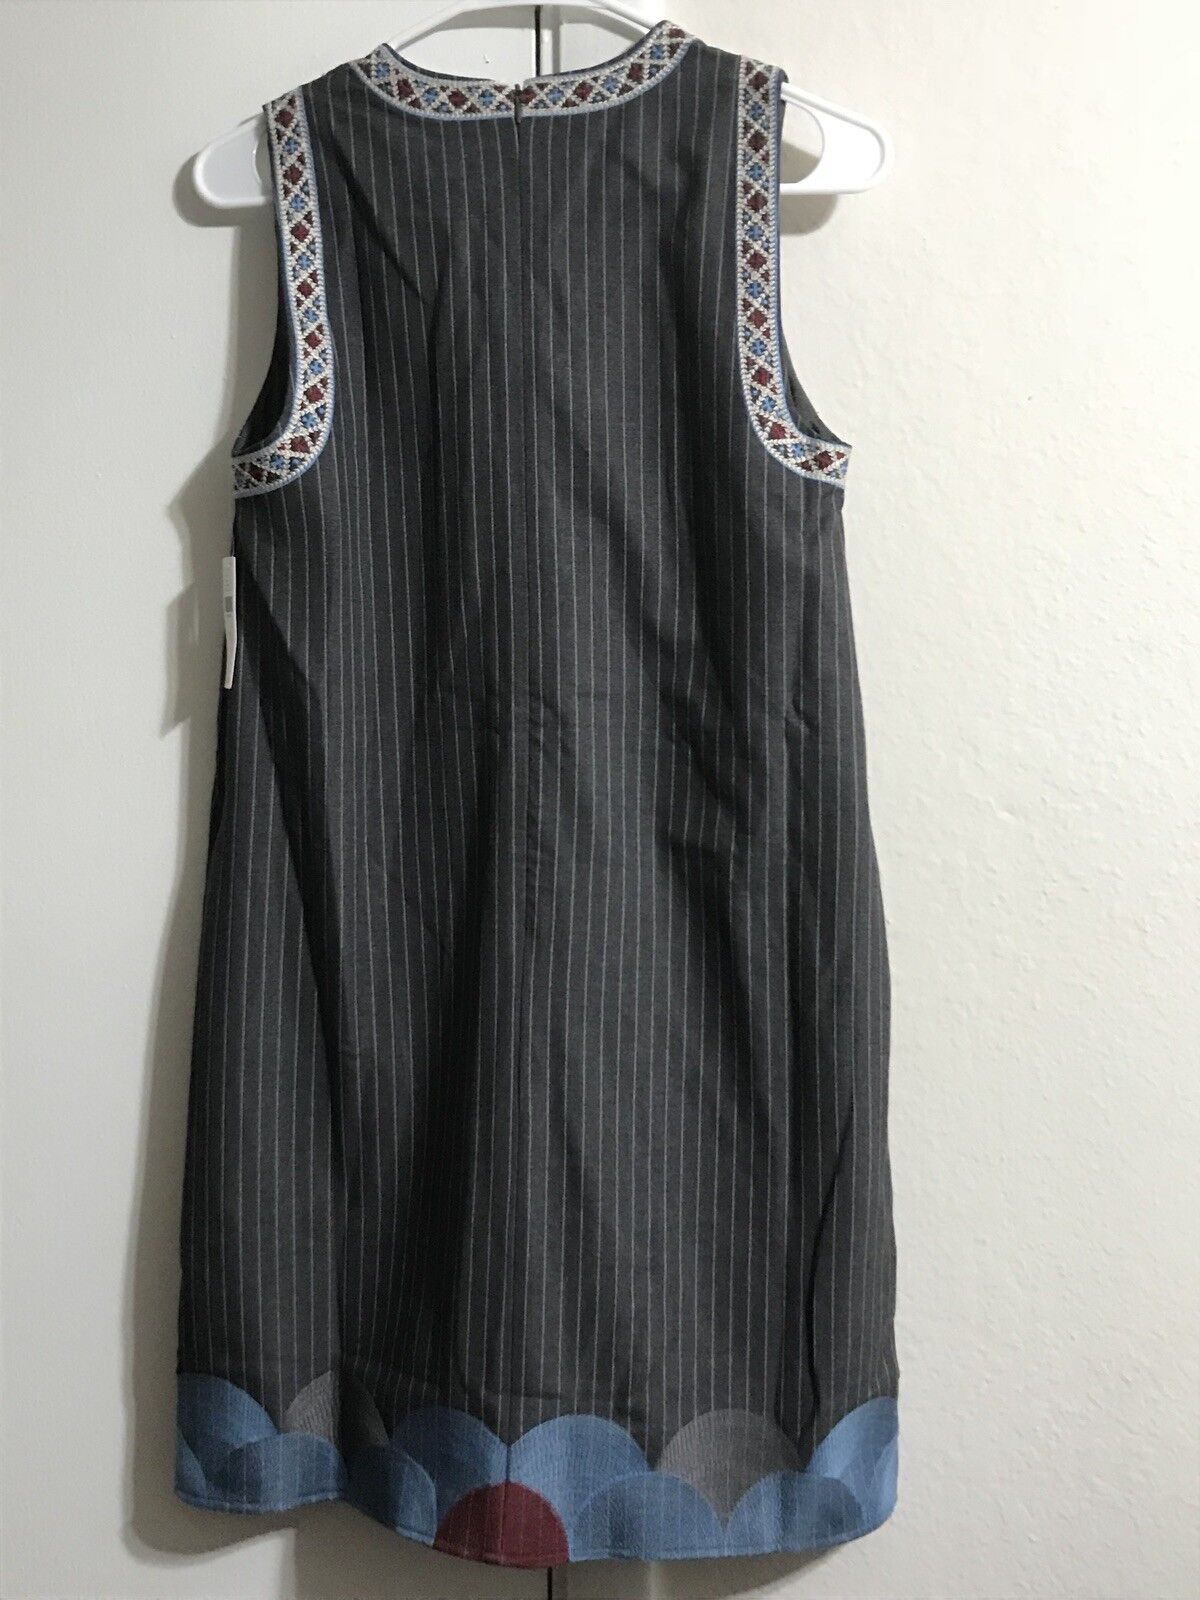 228 NWT NWT NWT Anthropologie Pinstriped Shift Dress S By Foxiedox efebd5